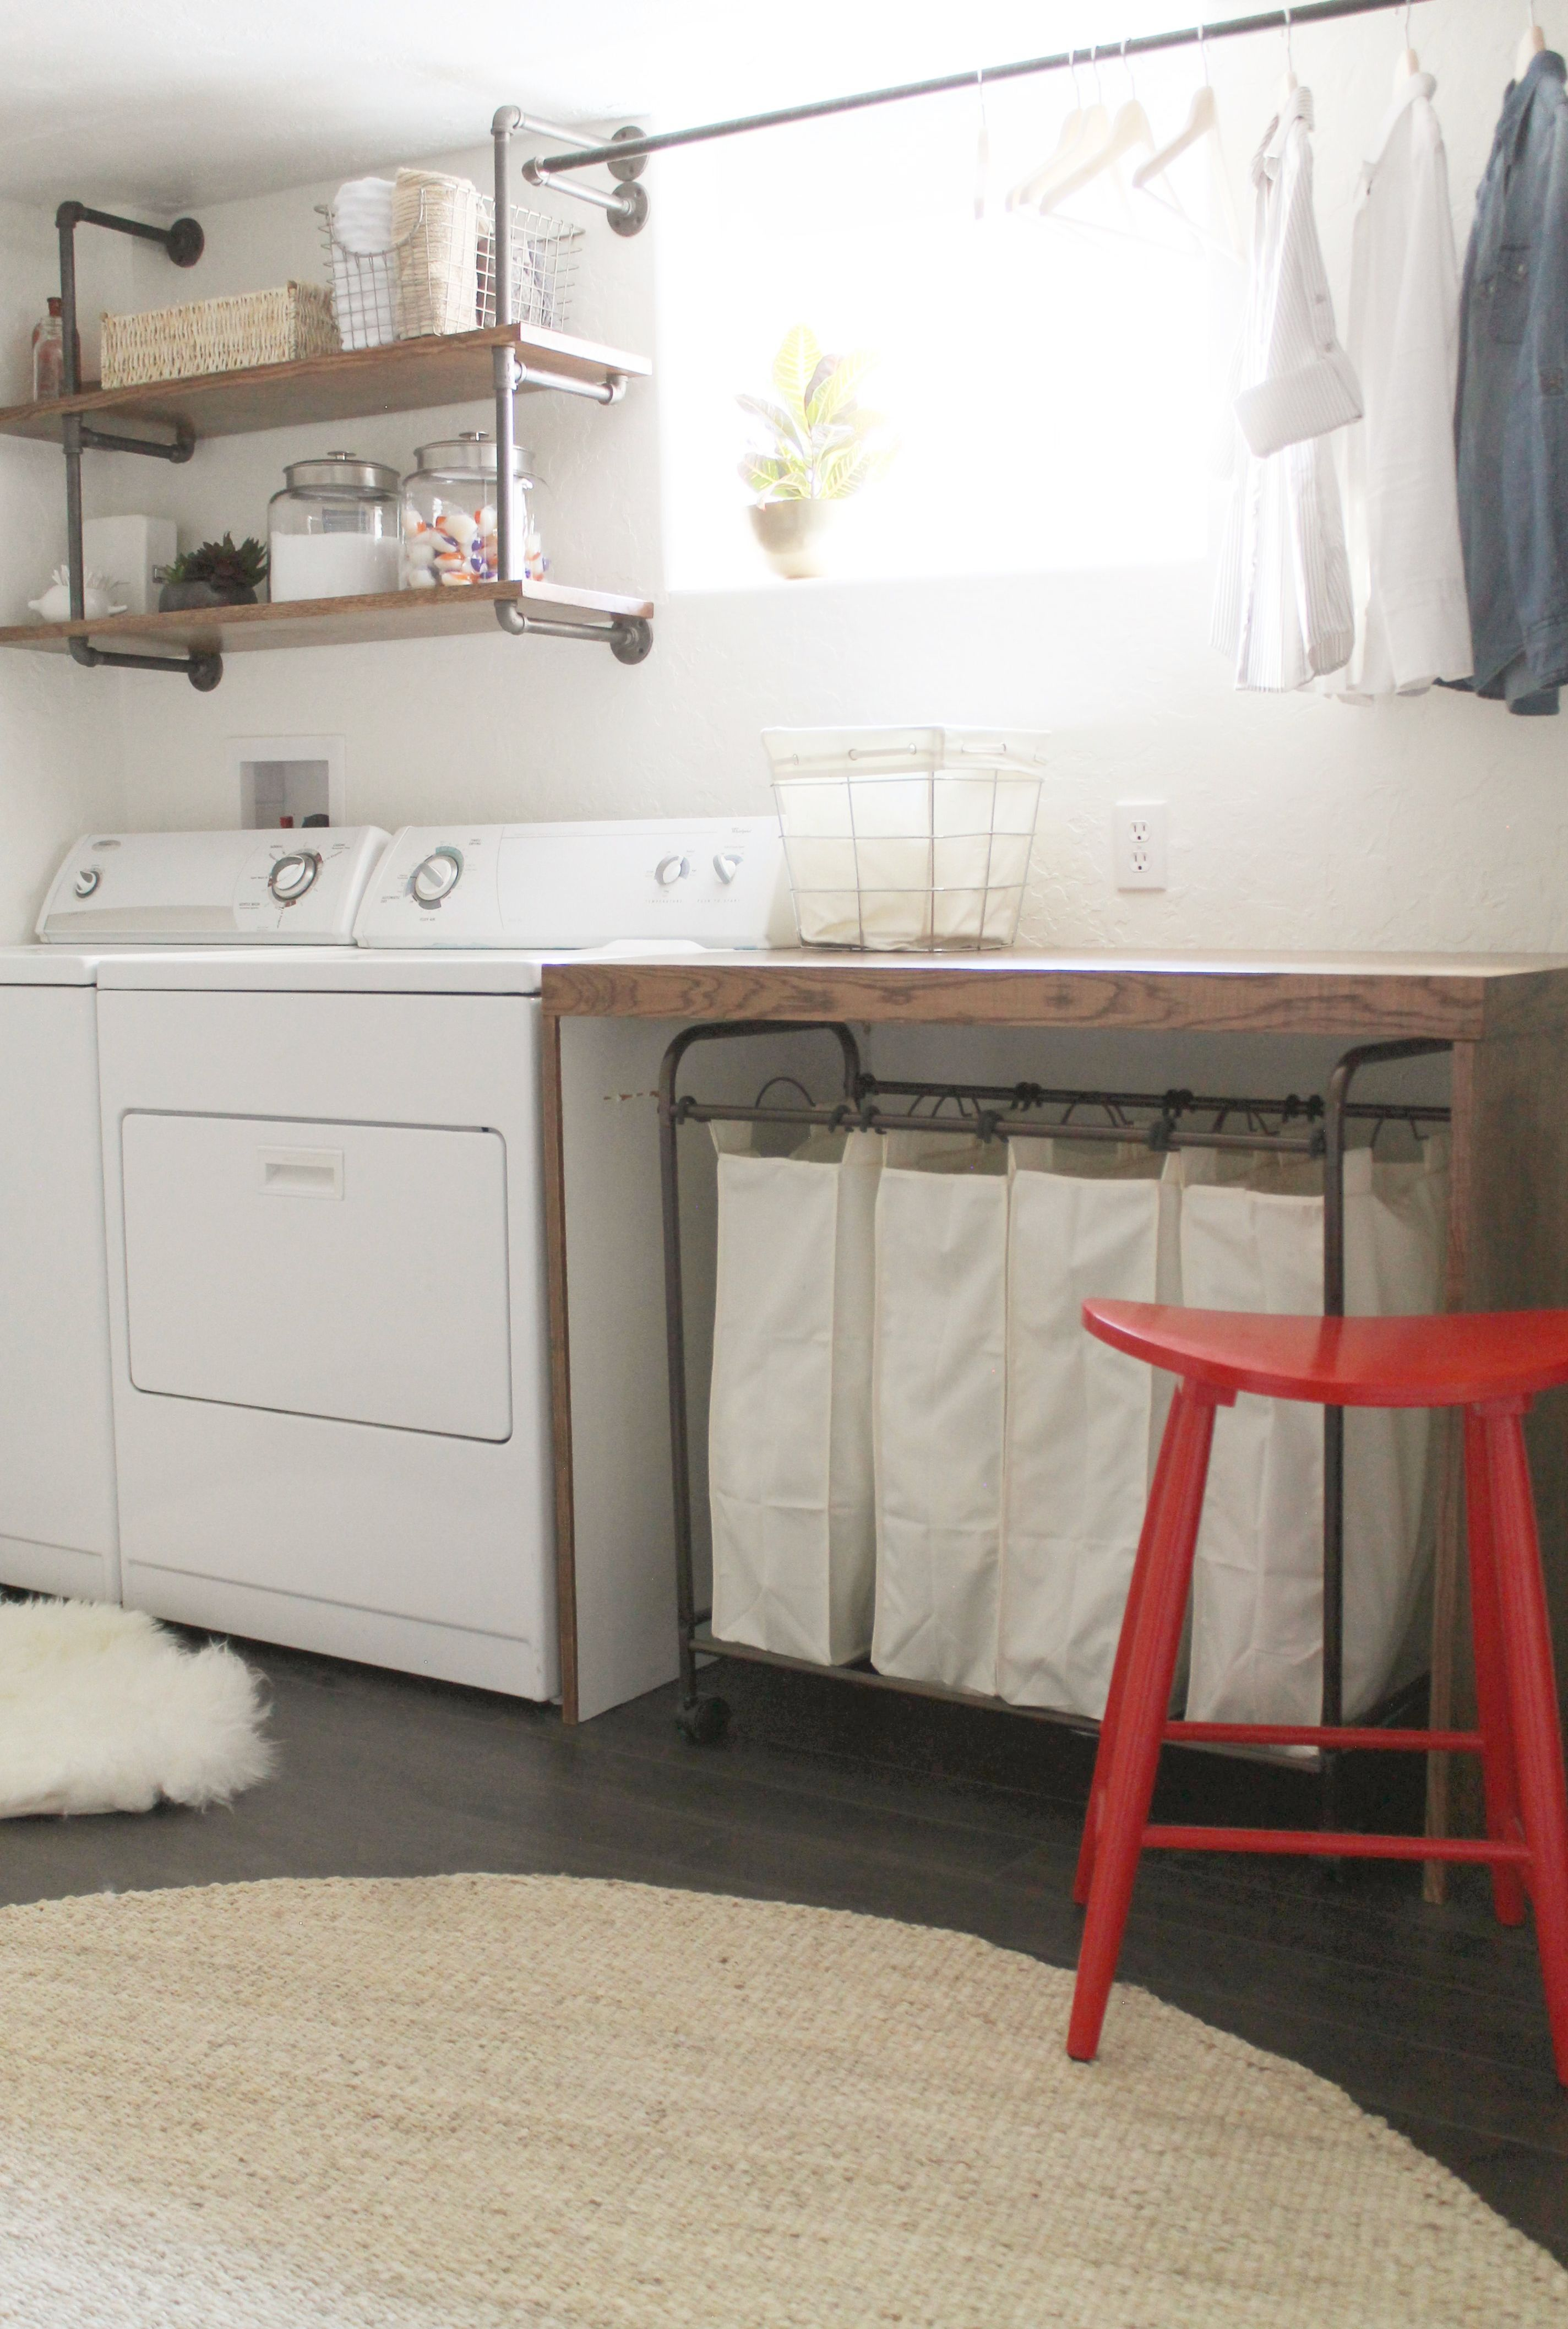 Basement laundry room i like the simplicity of this room the wooden folding table